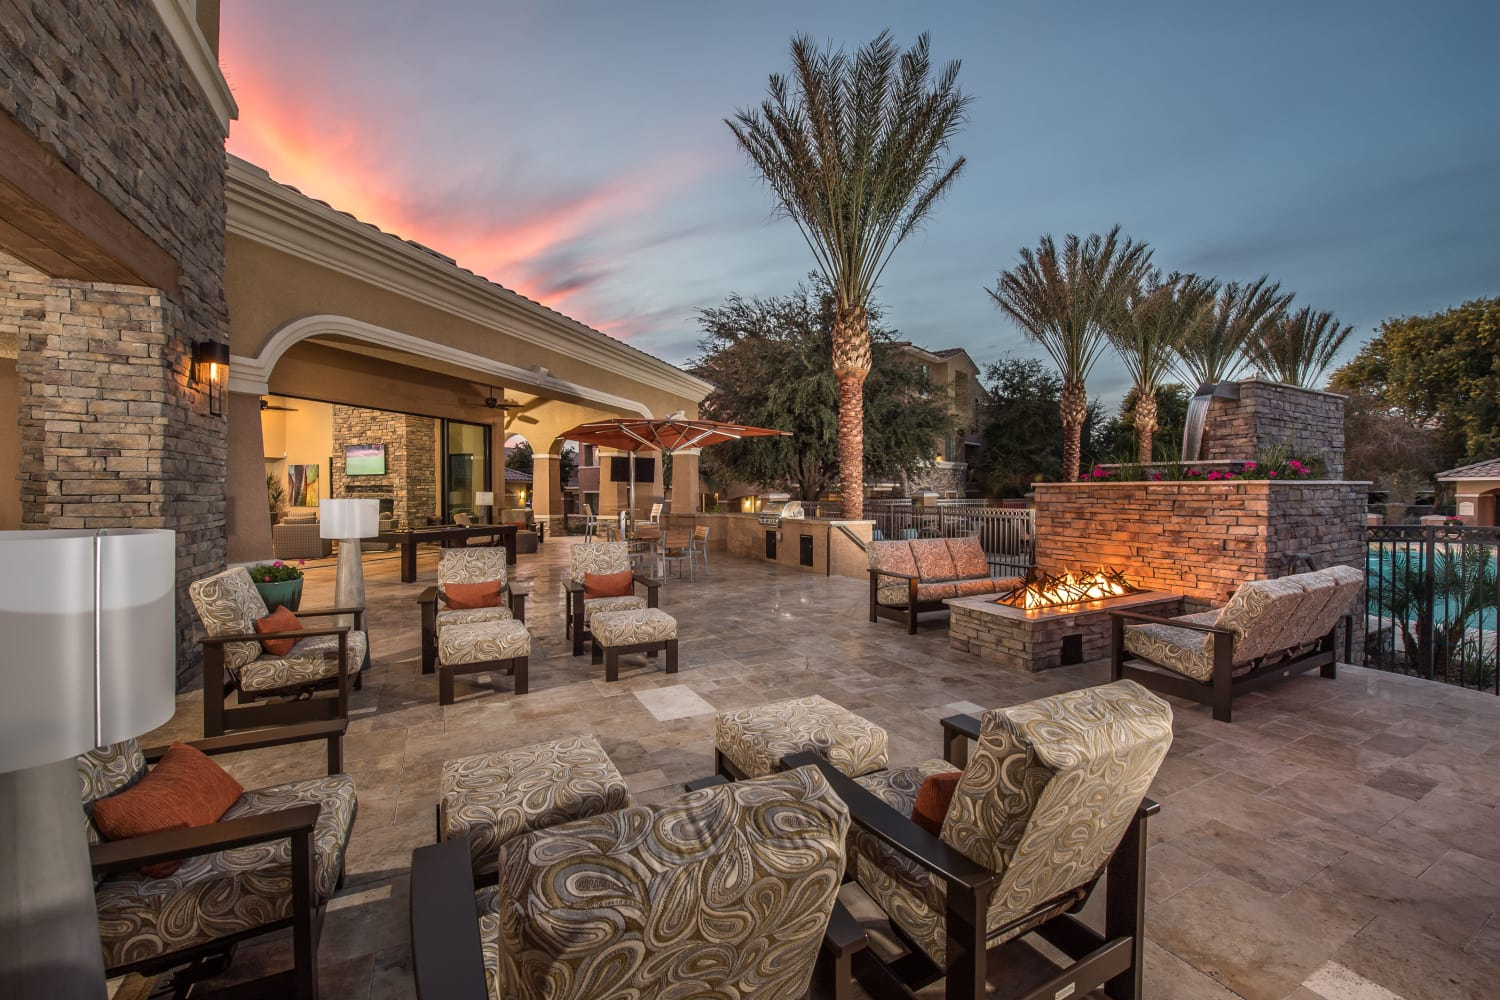 Beautifully architected outdoor common area with fire pit and lounge seating at Stone Oaks, a Mark-Taylor luxury community